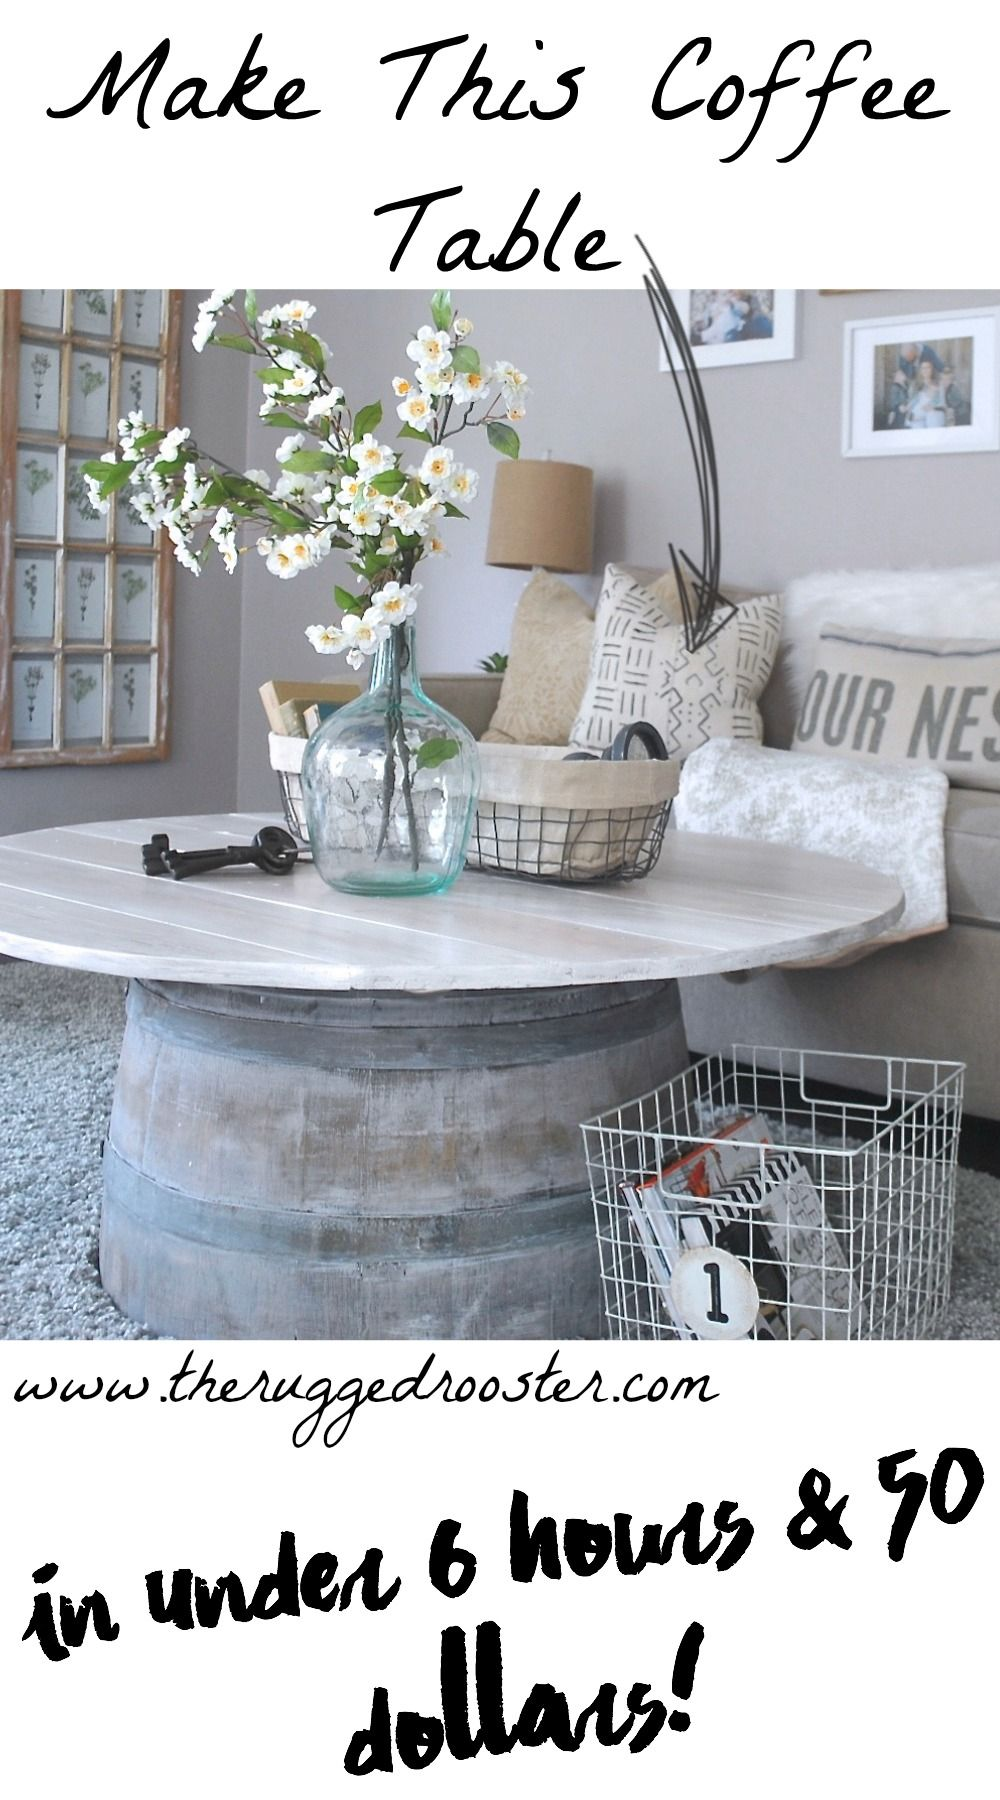 Learn How To Make a Wine Barrel Coffee Table In Under 6 Hours and